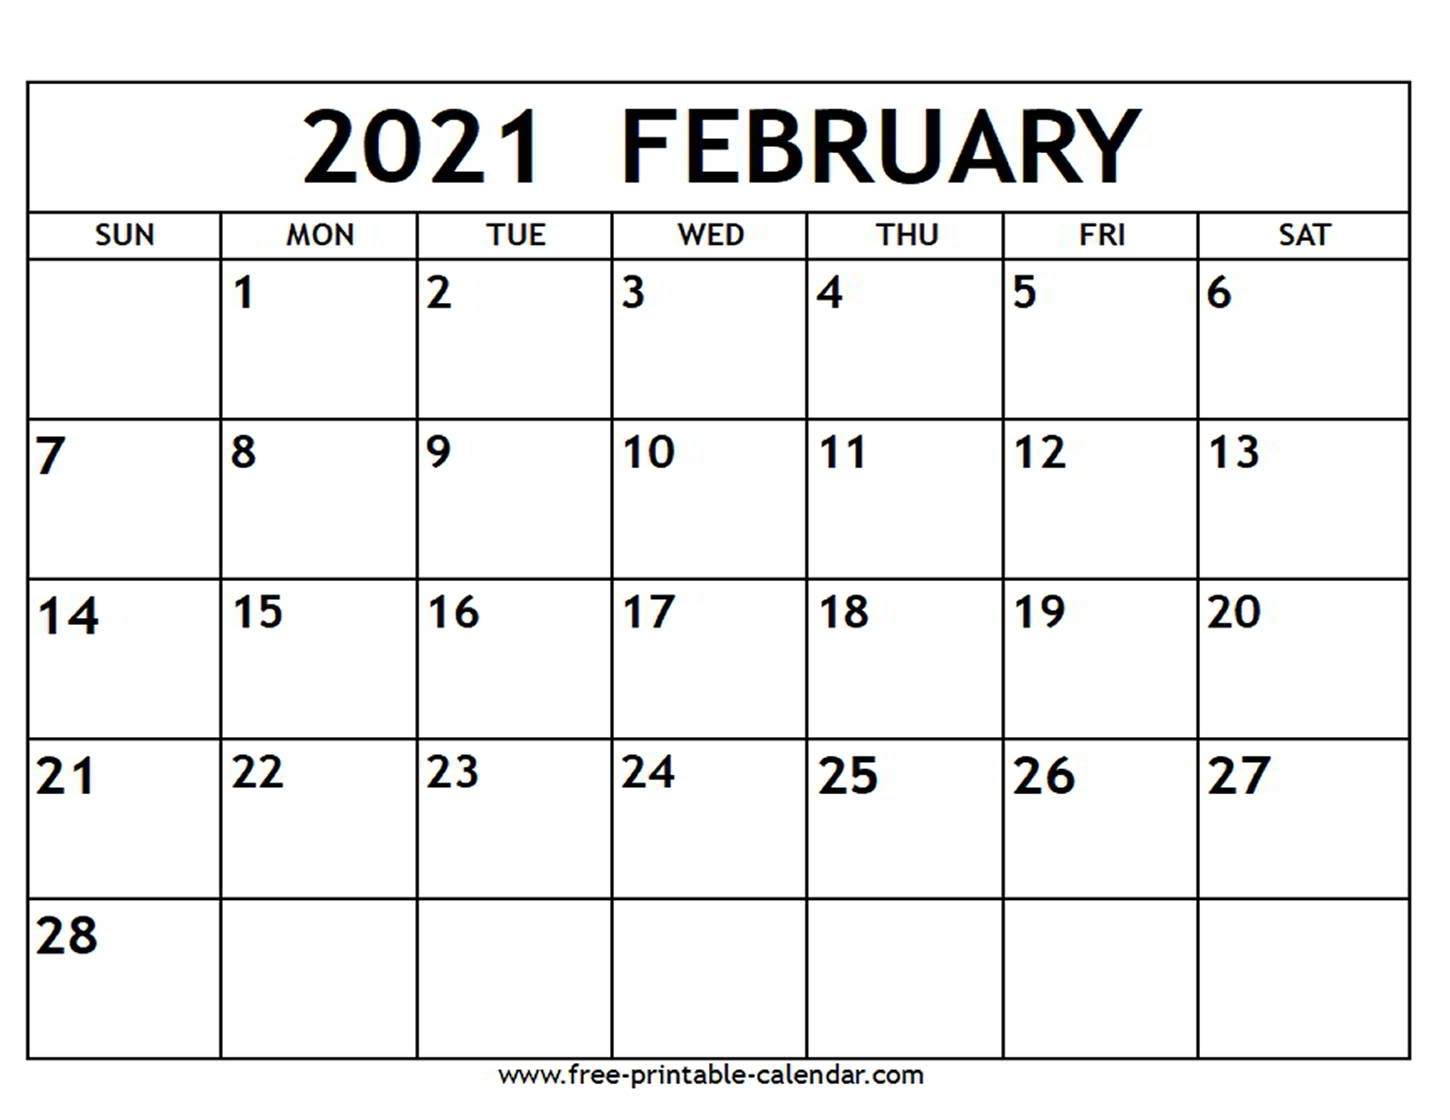 Catch 2021 Calendar Printable Free